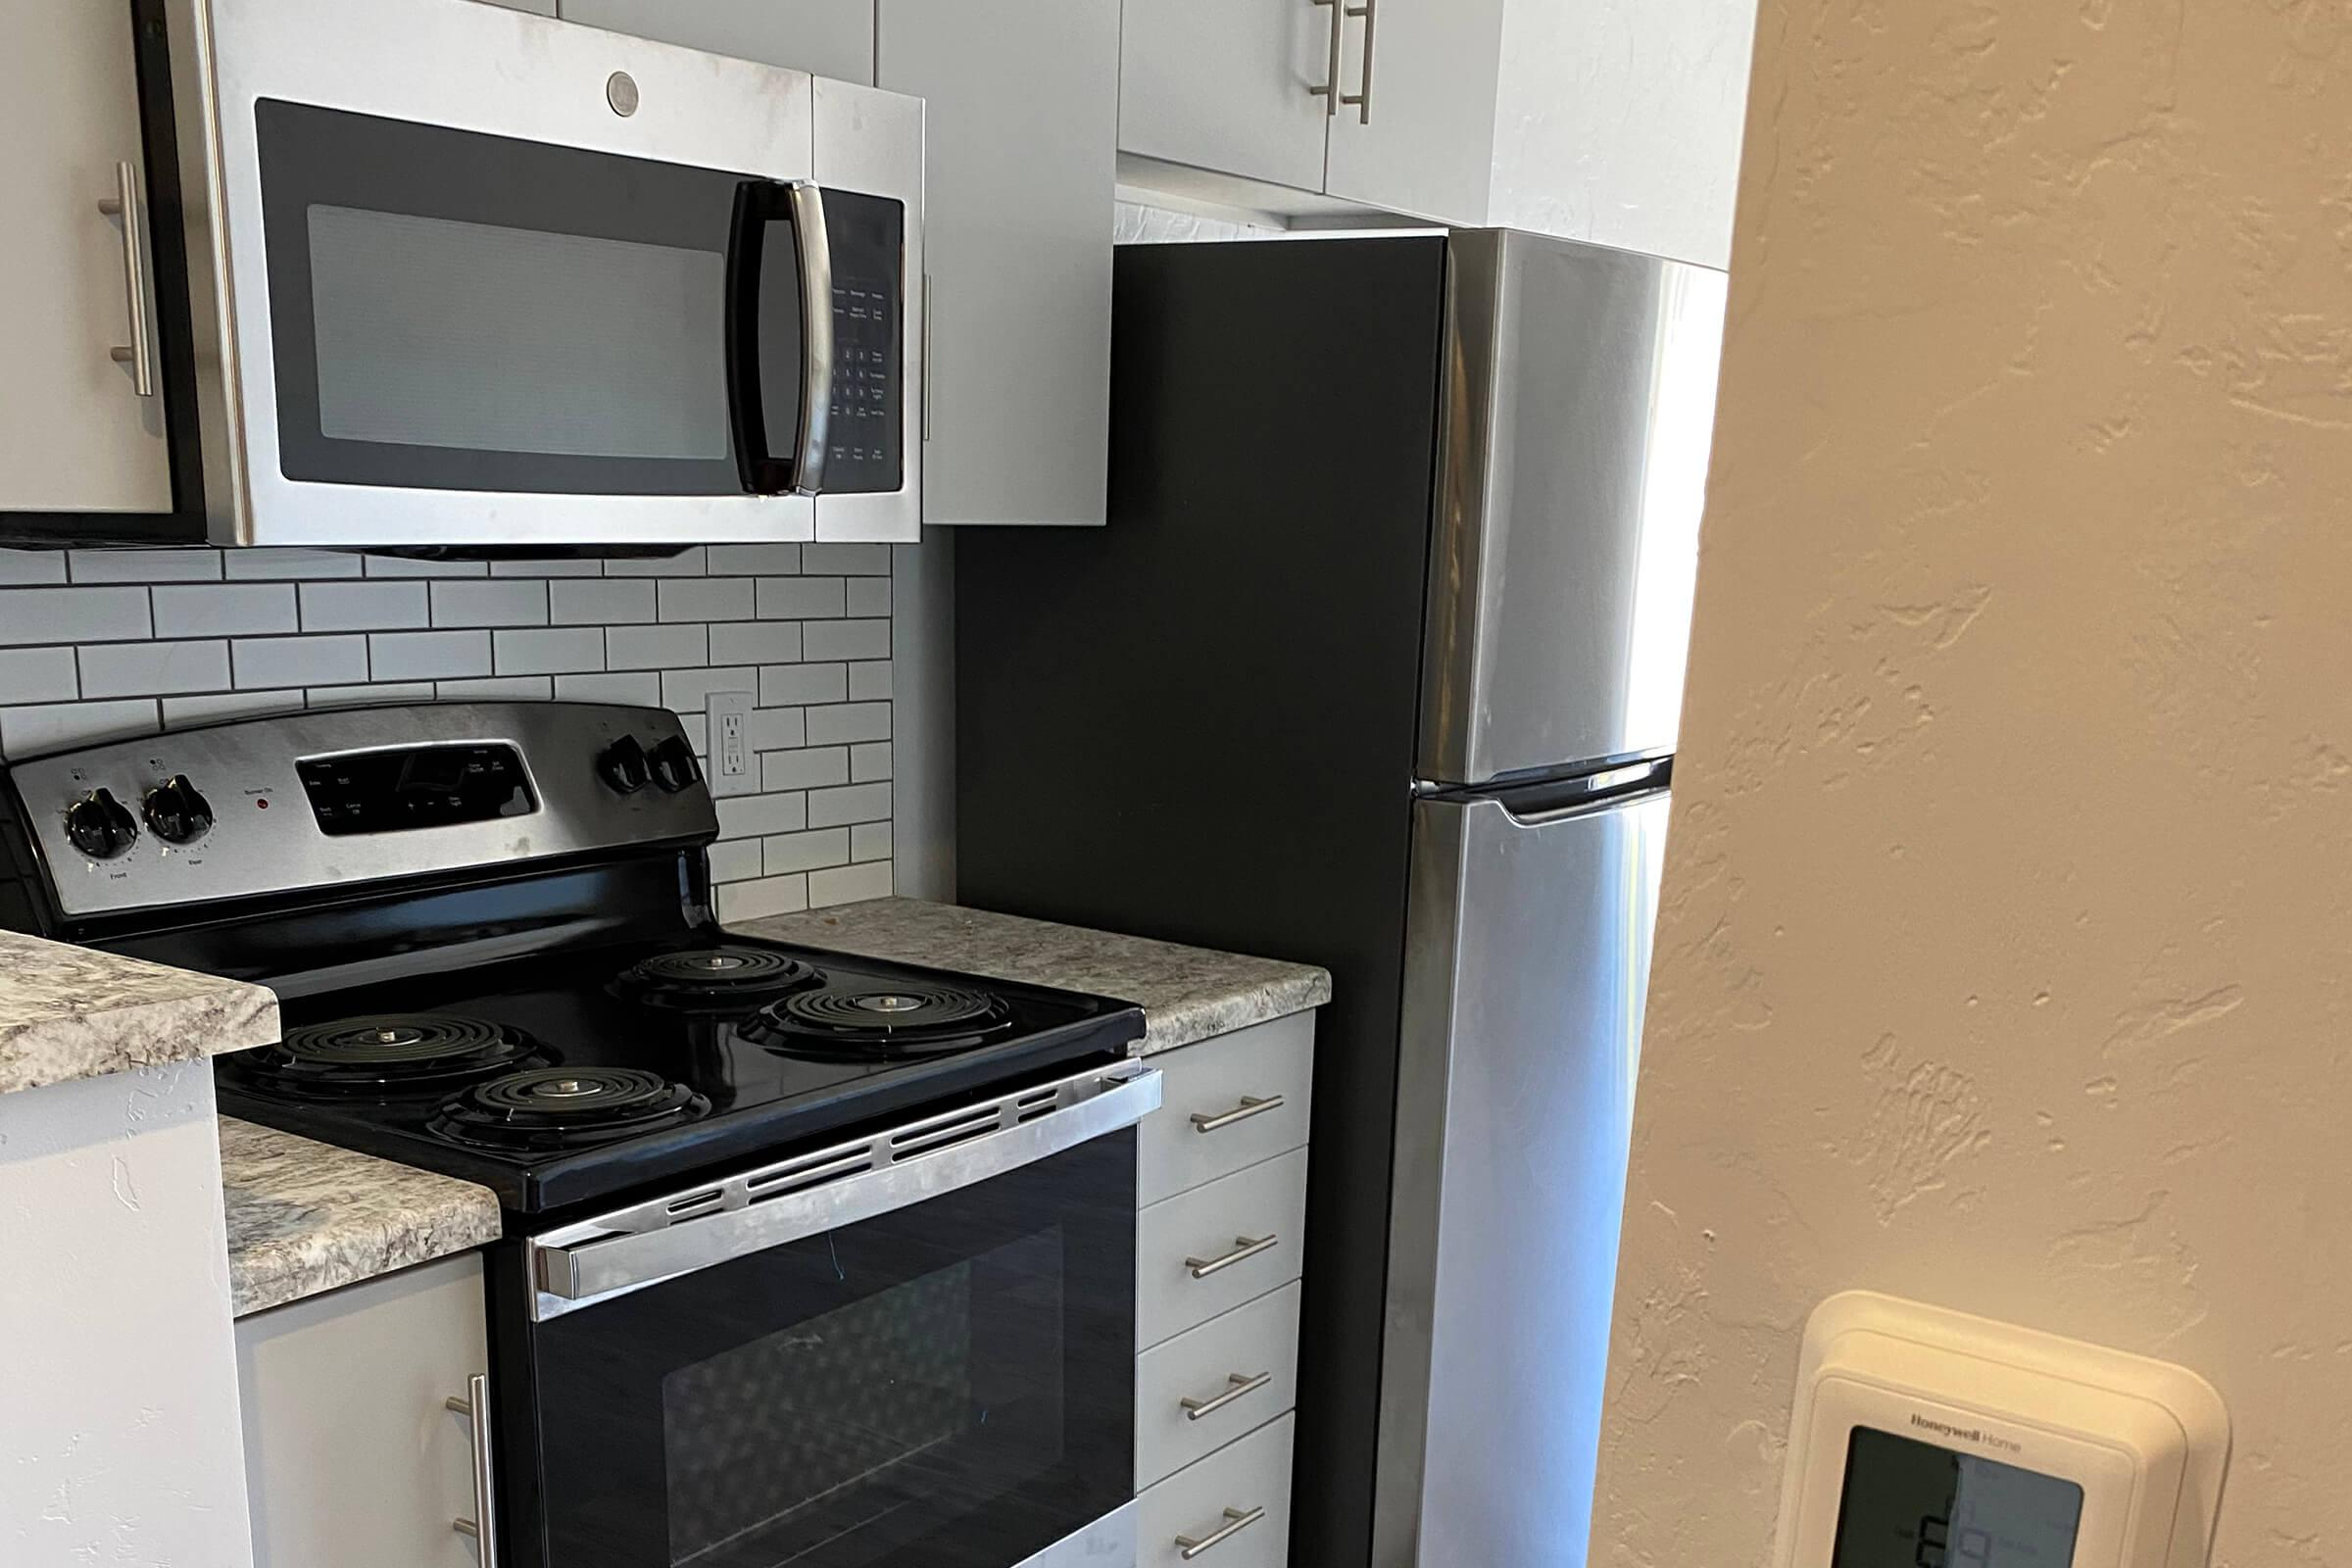 a microwave oven sitting on top of a stove